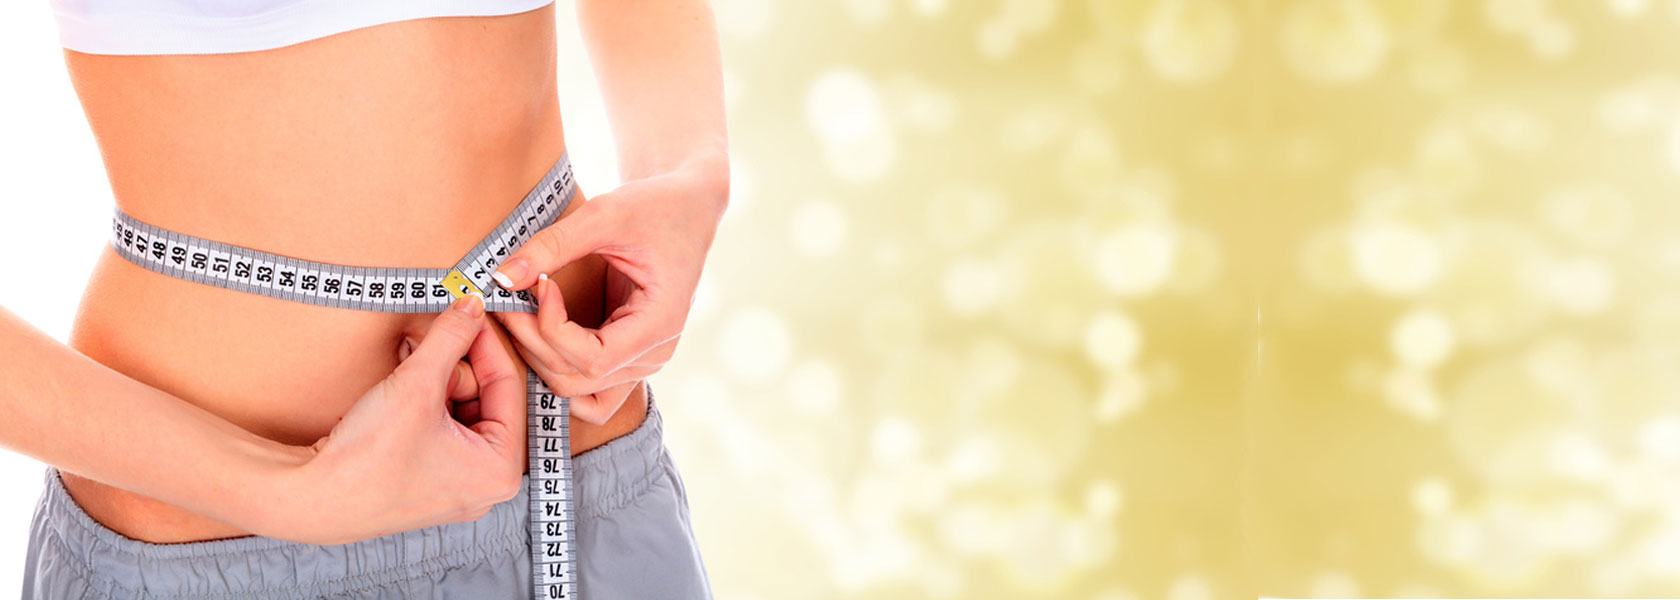 okotoks weight loss